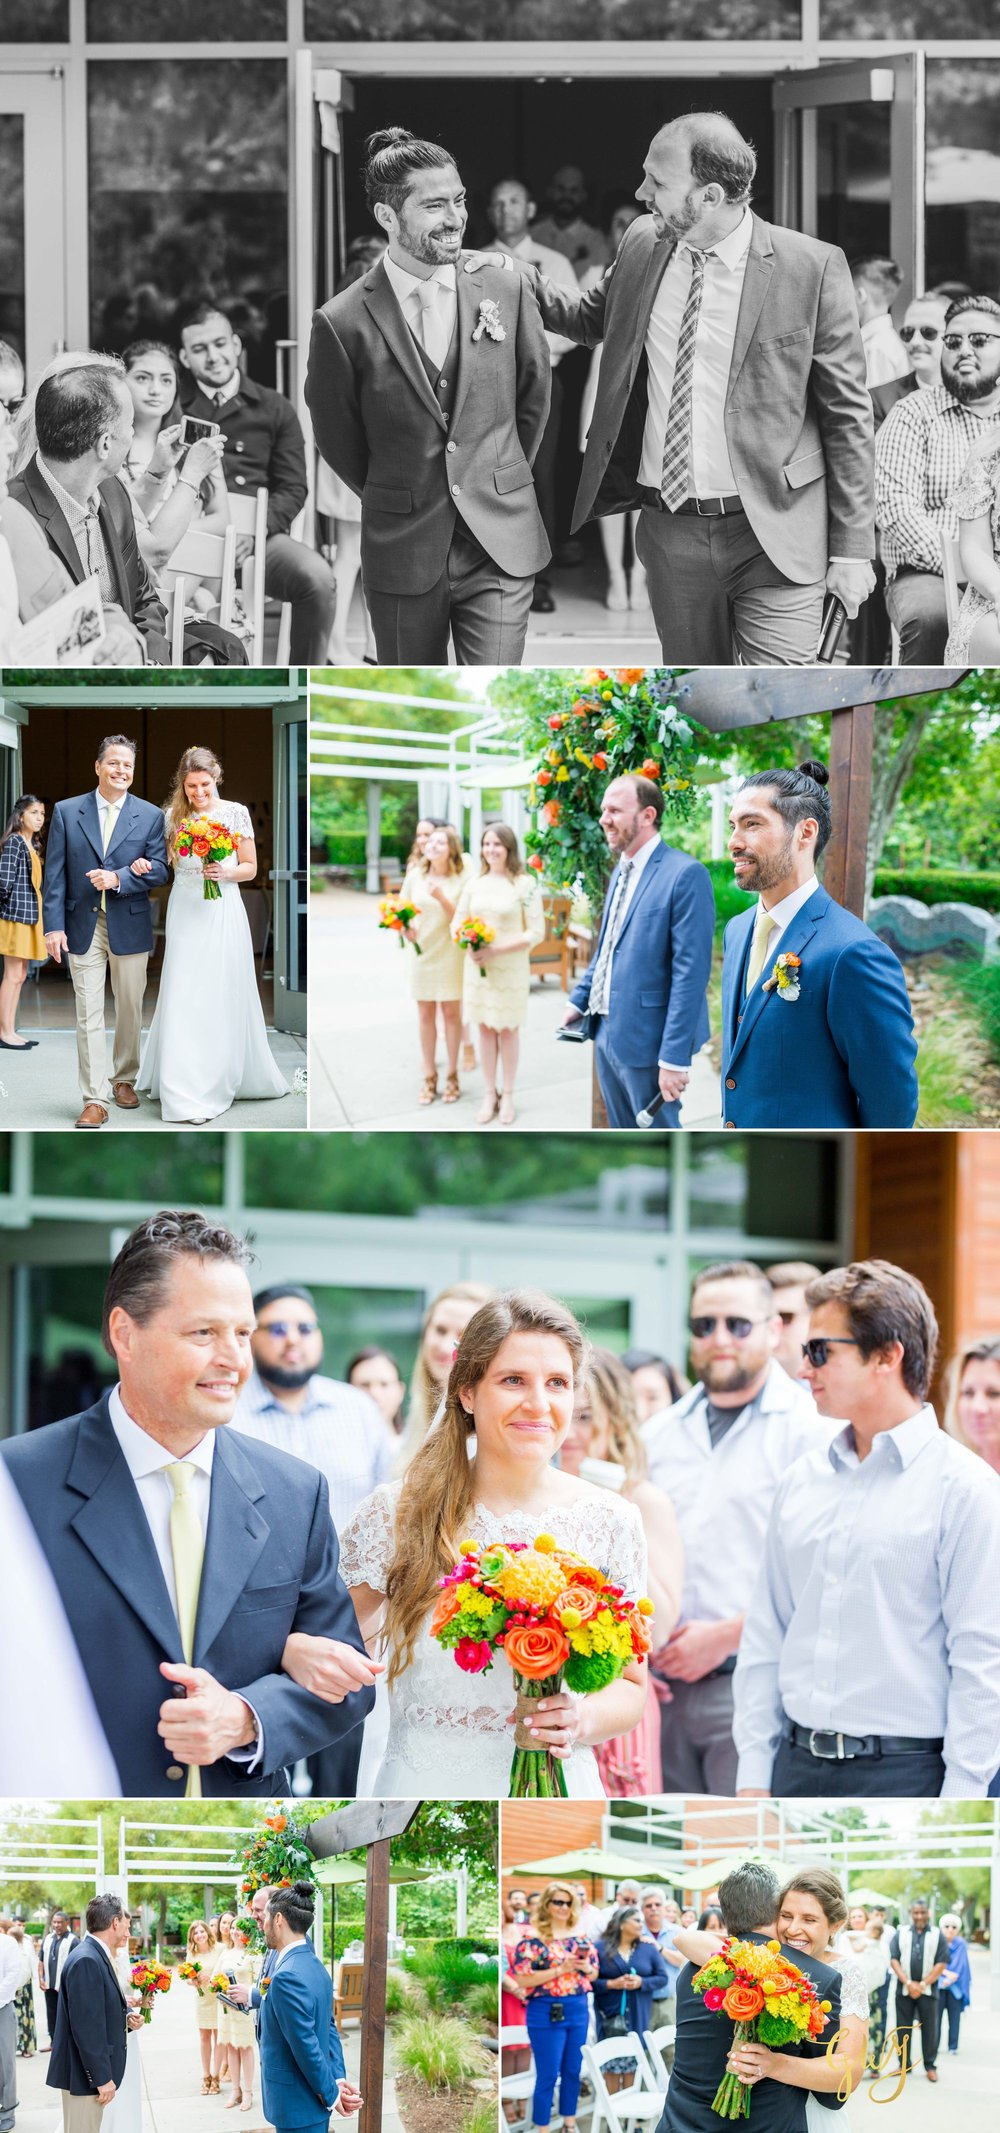 Jose + Sarah Norman P Murray Mission Viejo Summer Wedding by Glass Woods Media 26.jpg